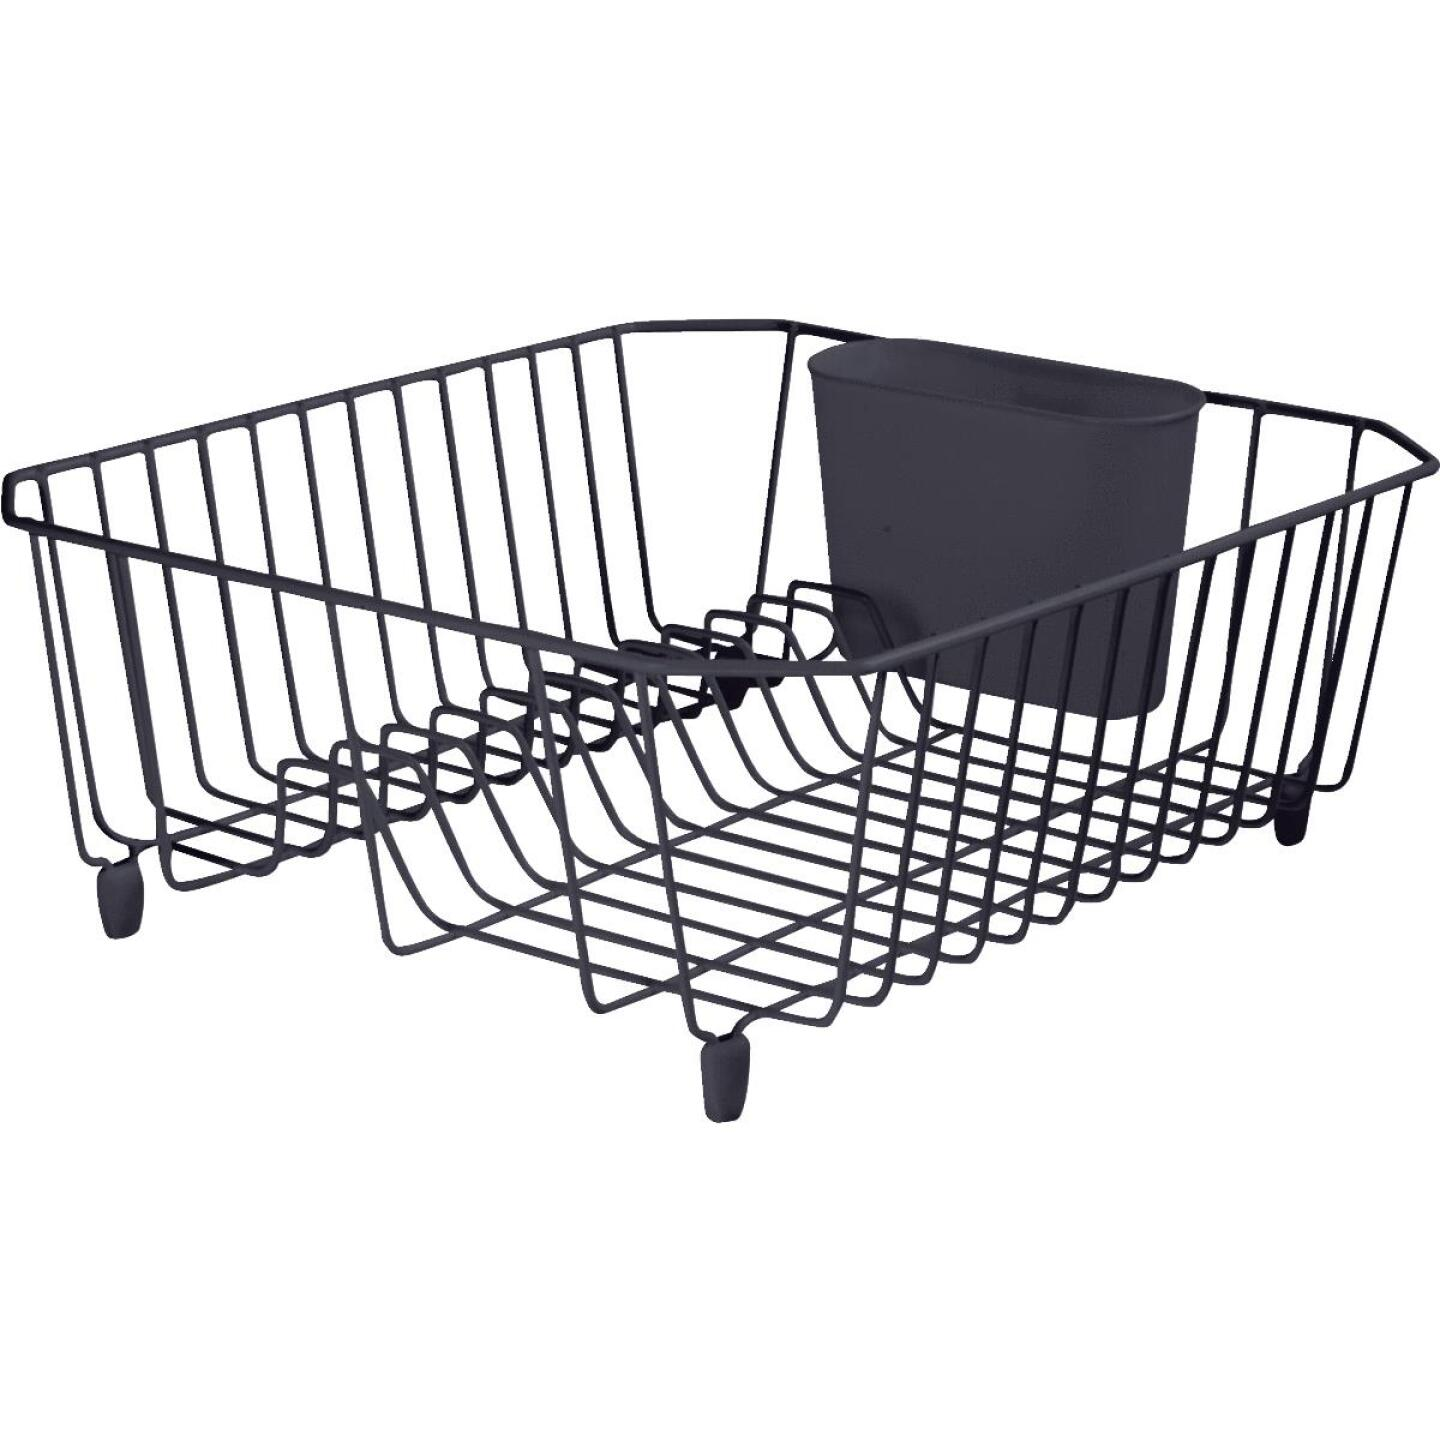 Rubbermaid 12.49 In. x 14.31 In. Black Wire Sink Dish Drainer Image 1